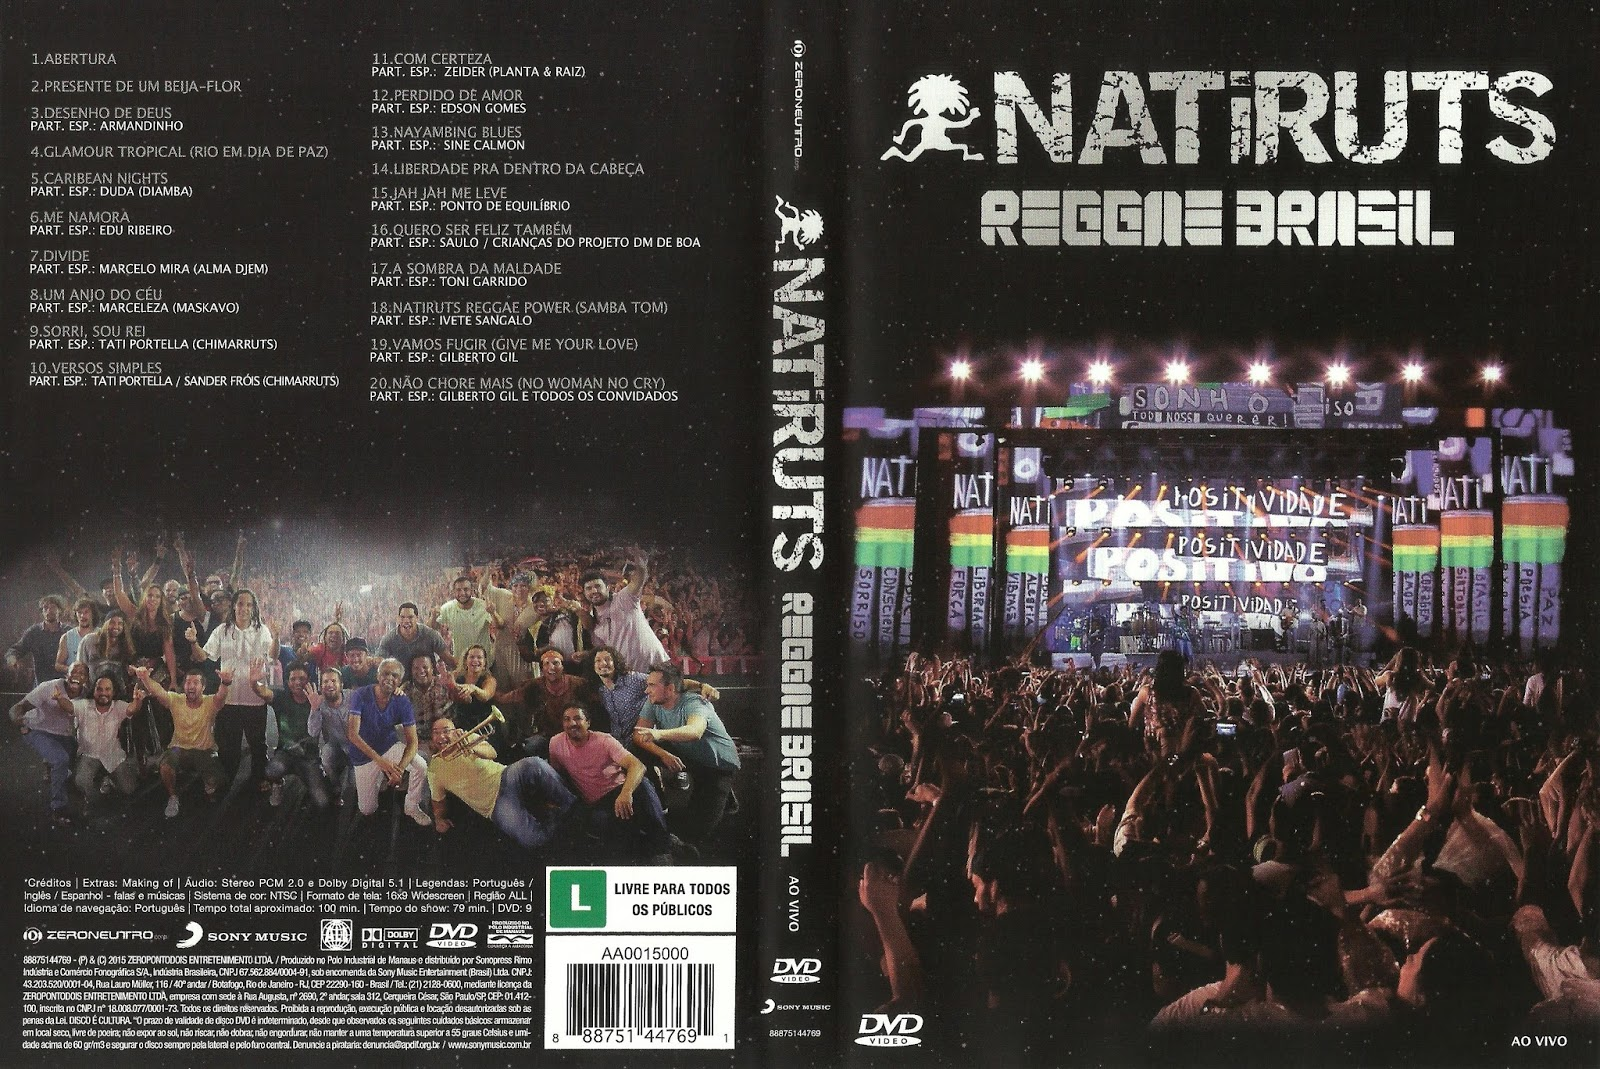 Download Natiruts Reggae Brasil DVD-R Natiruts 2BReggae 2BBrasil 2Bao 2BVivo 2BDVD 2BXANDAODOWNLOAD